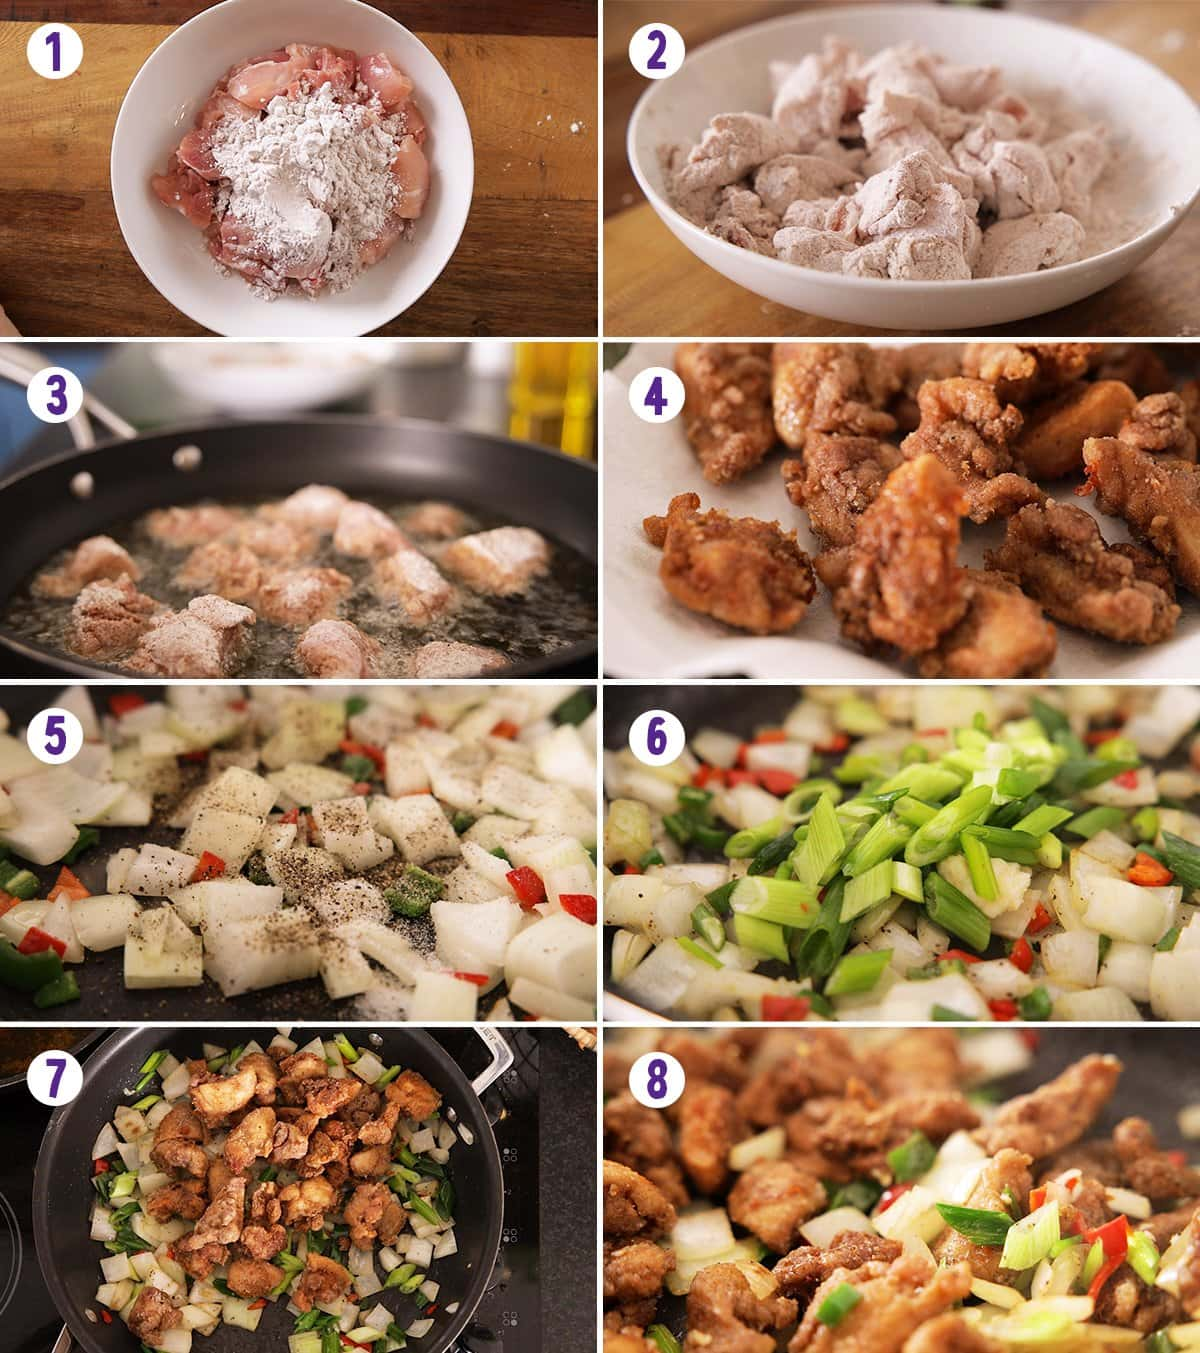 8 image collage showing how to makw salt and pepper chicken